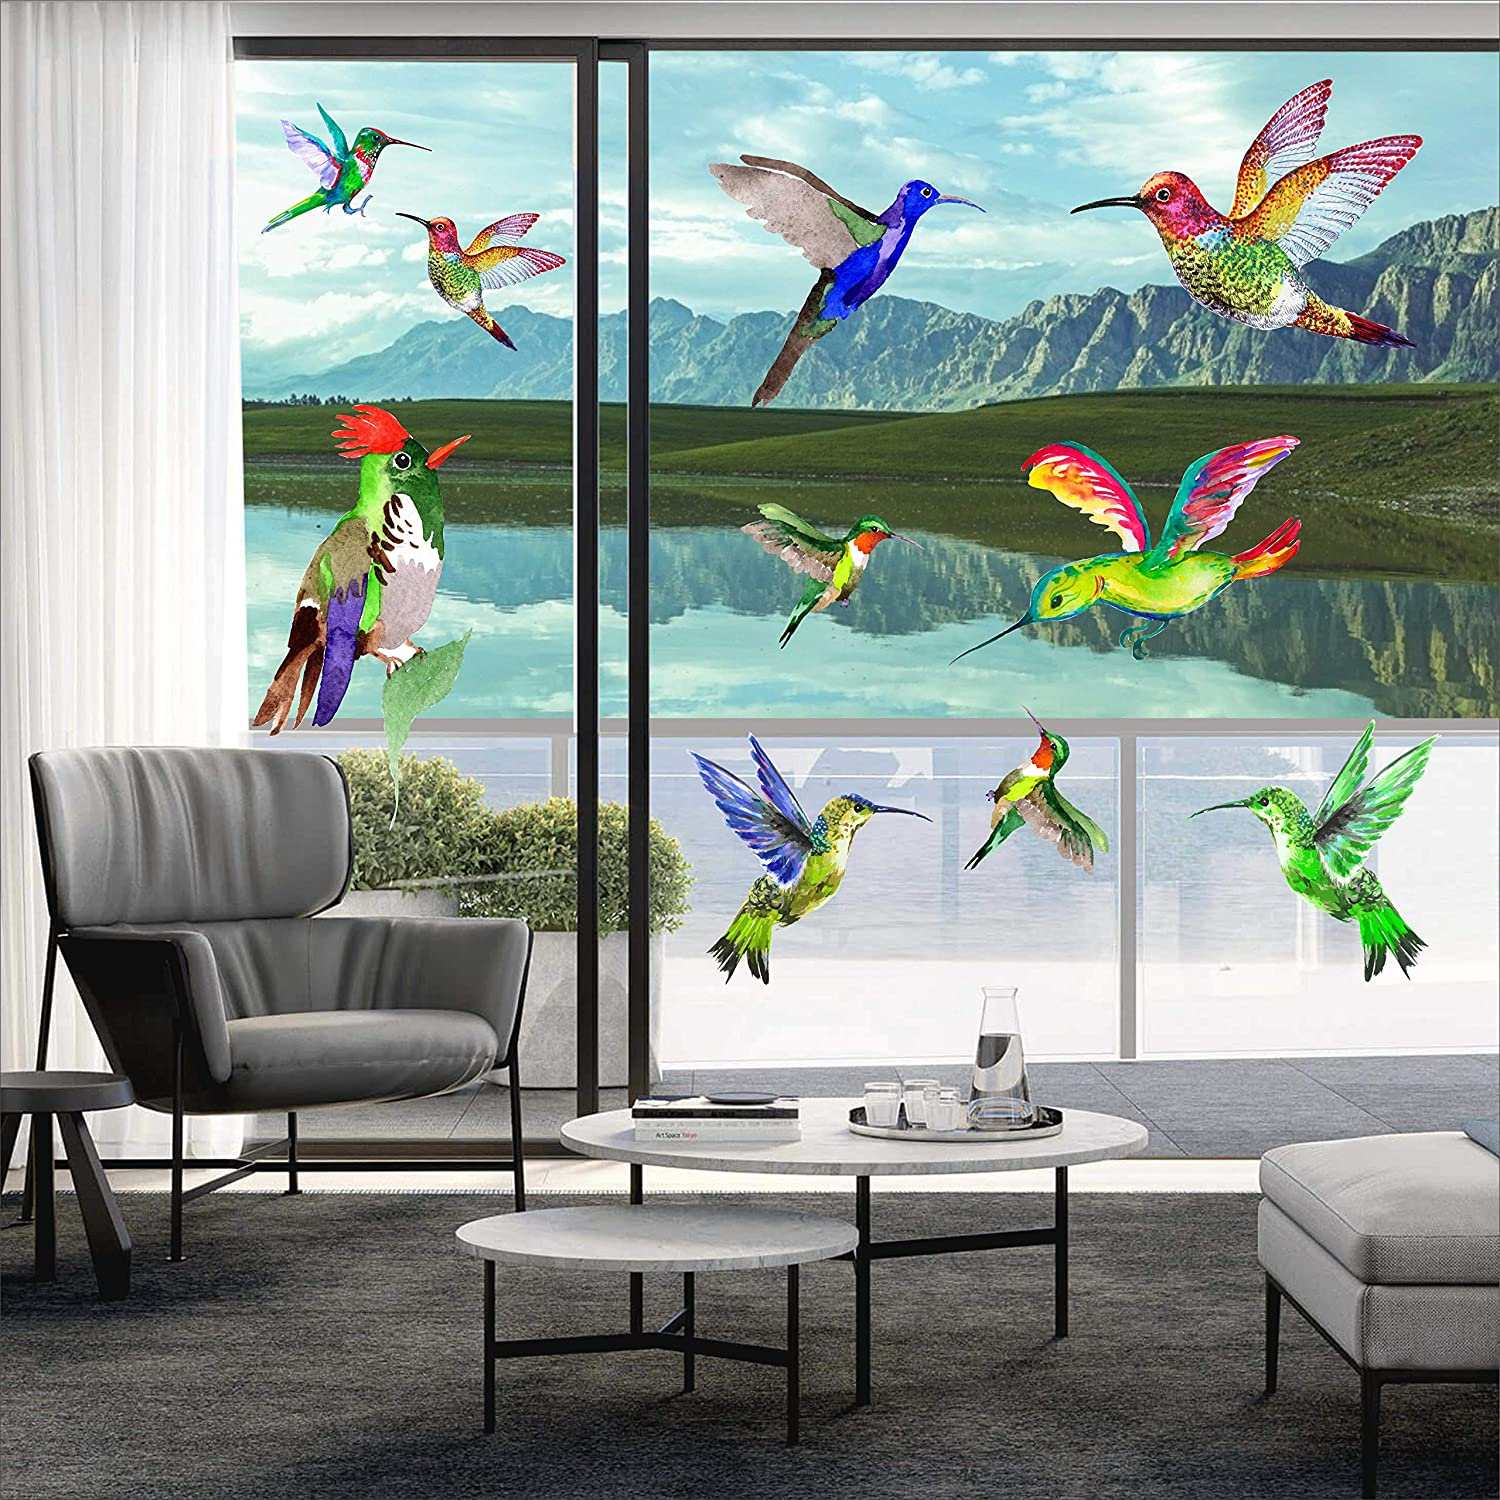 Hummingbird Max 70% OFF Window Clings sold out Anti Collision Stickers D Decor